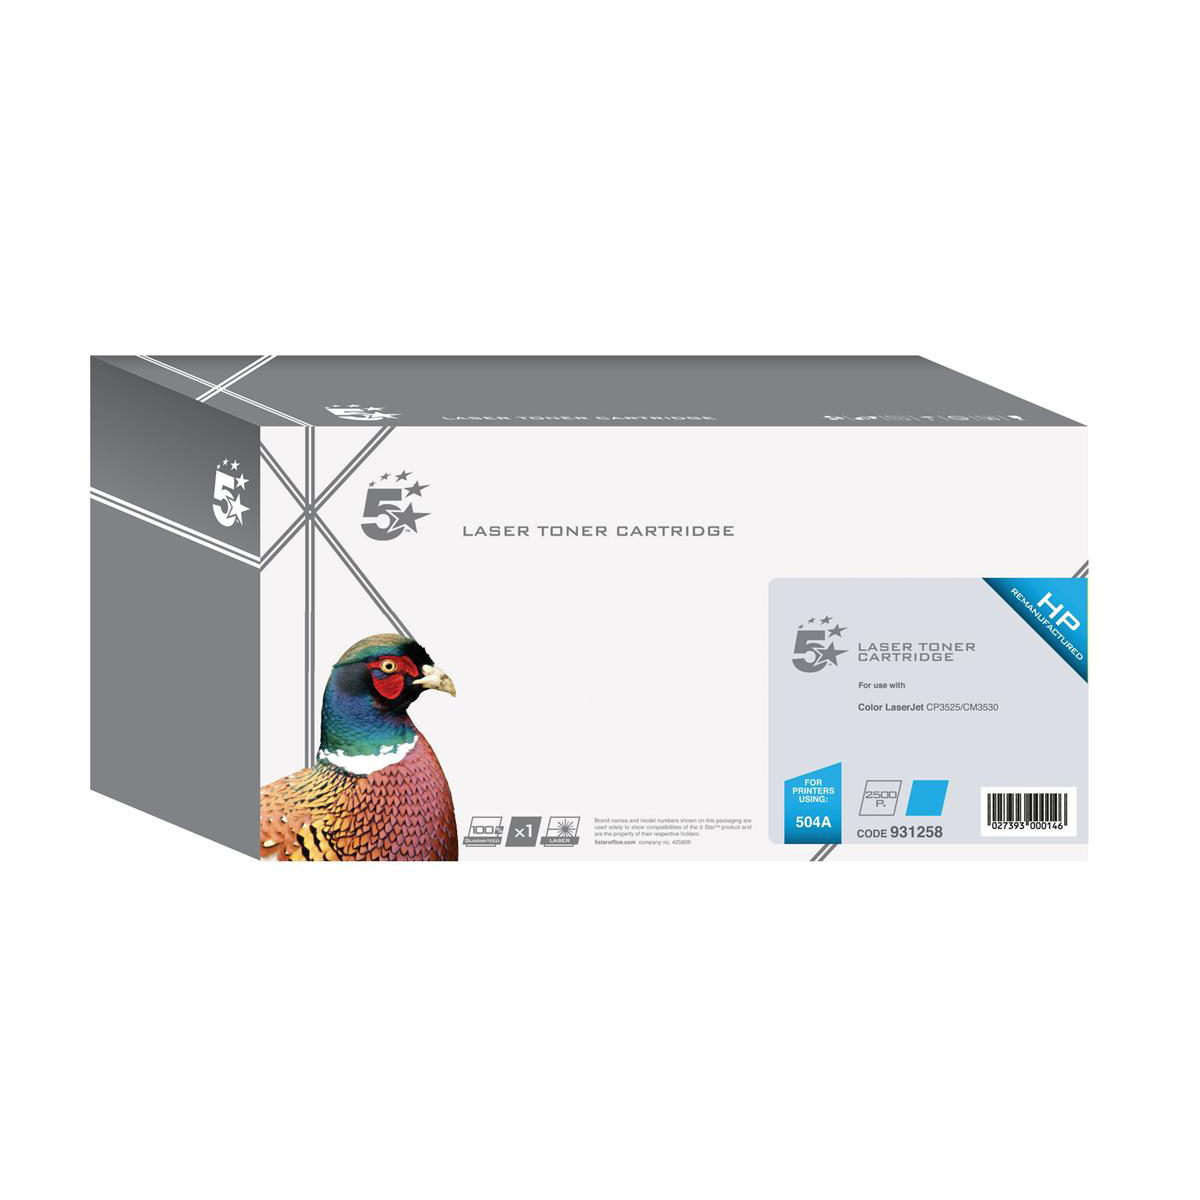 5 Star Office Remanufactured Laser Toner Cartridge 7000pp Cyan [HP 504A CE251A Alternative]